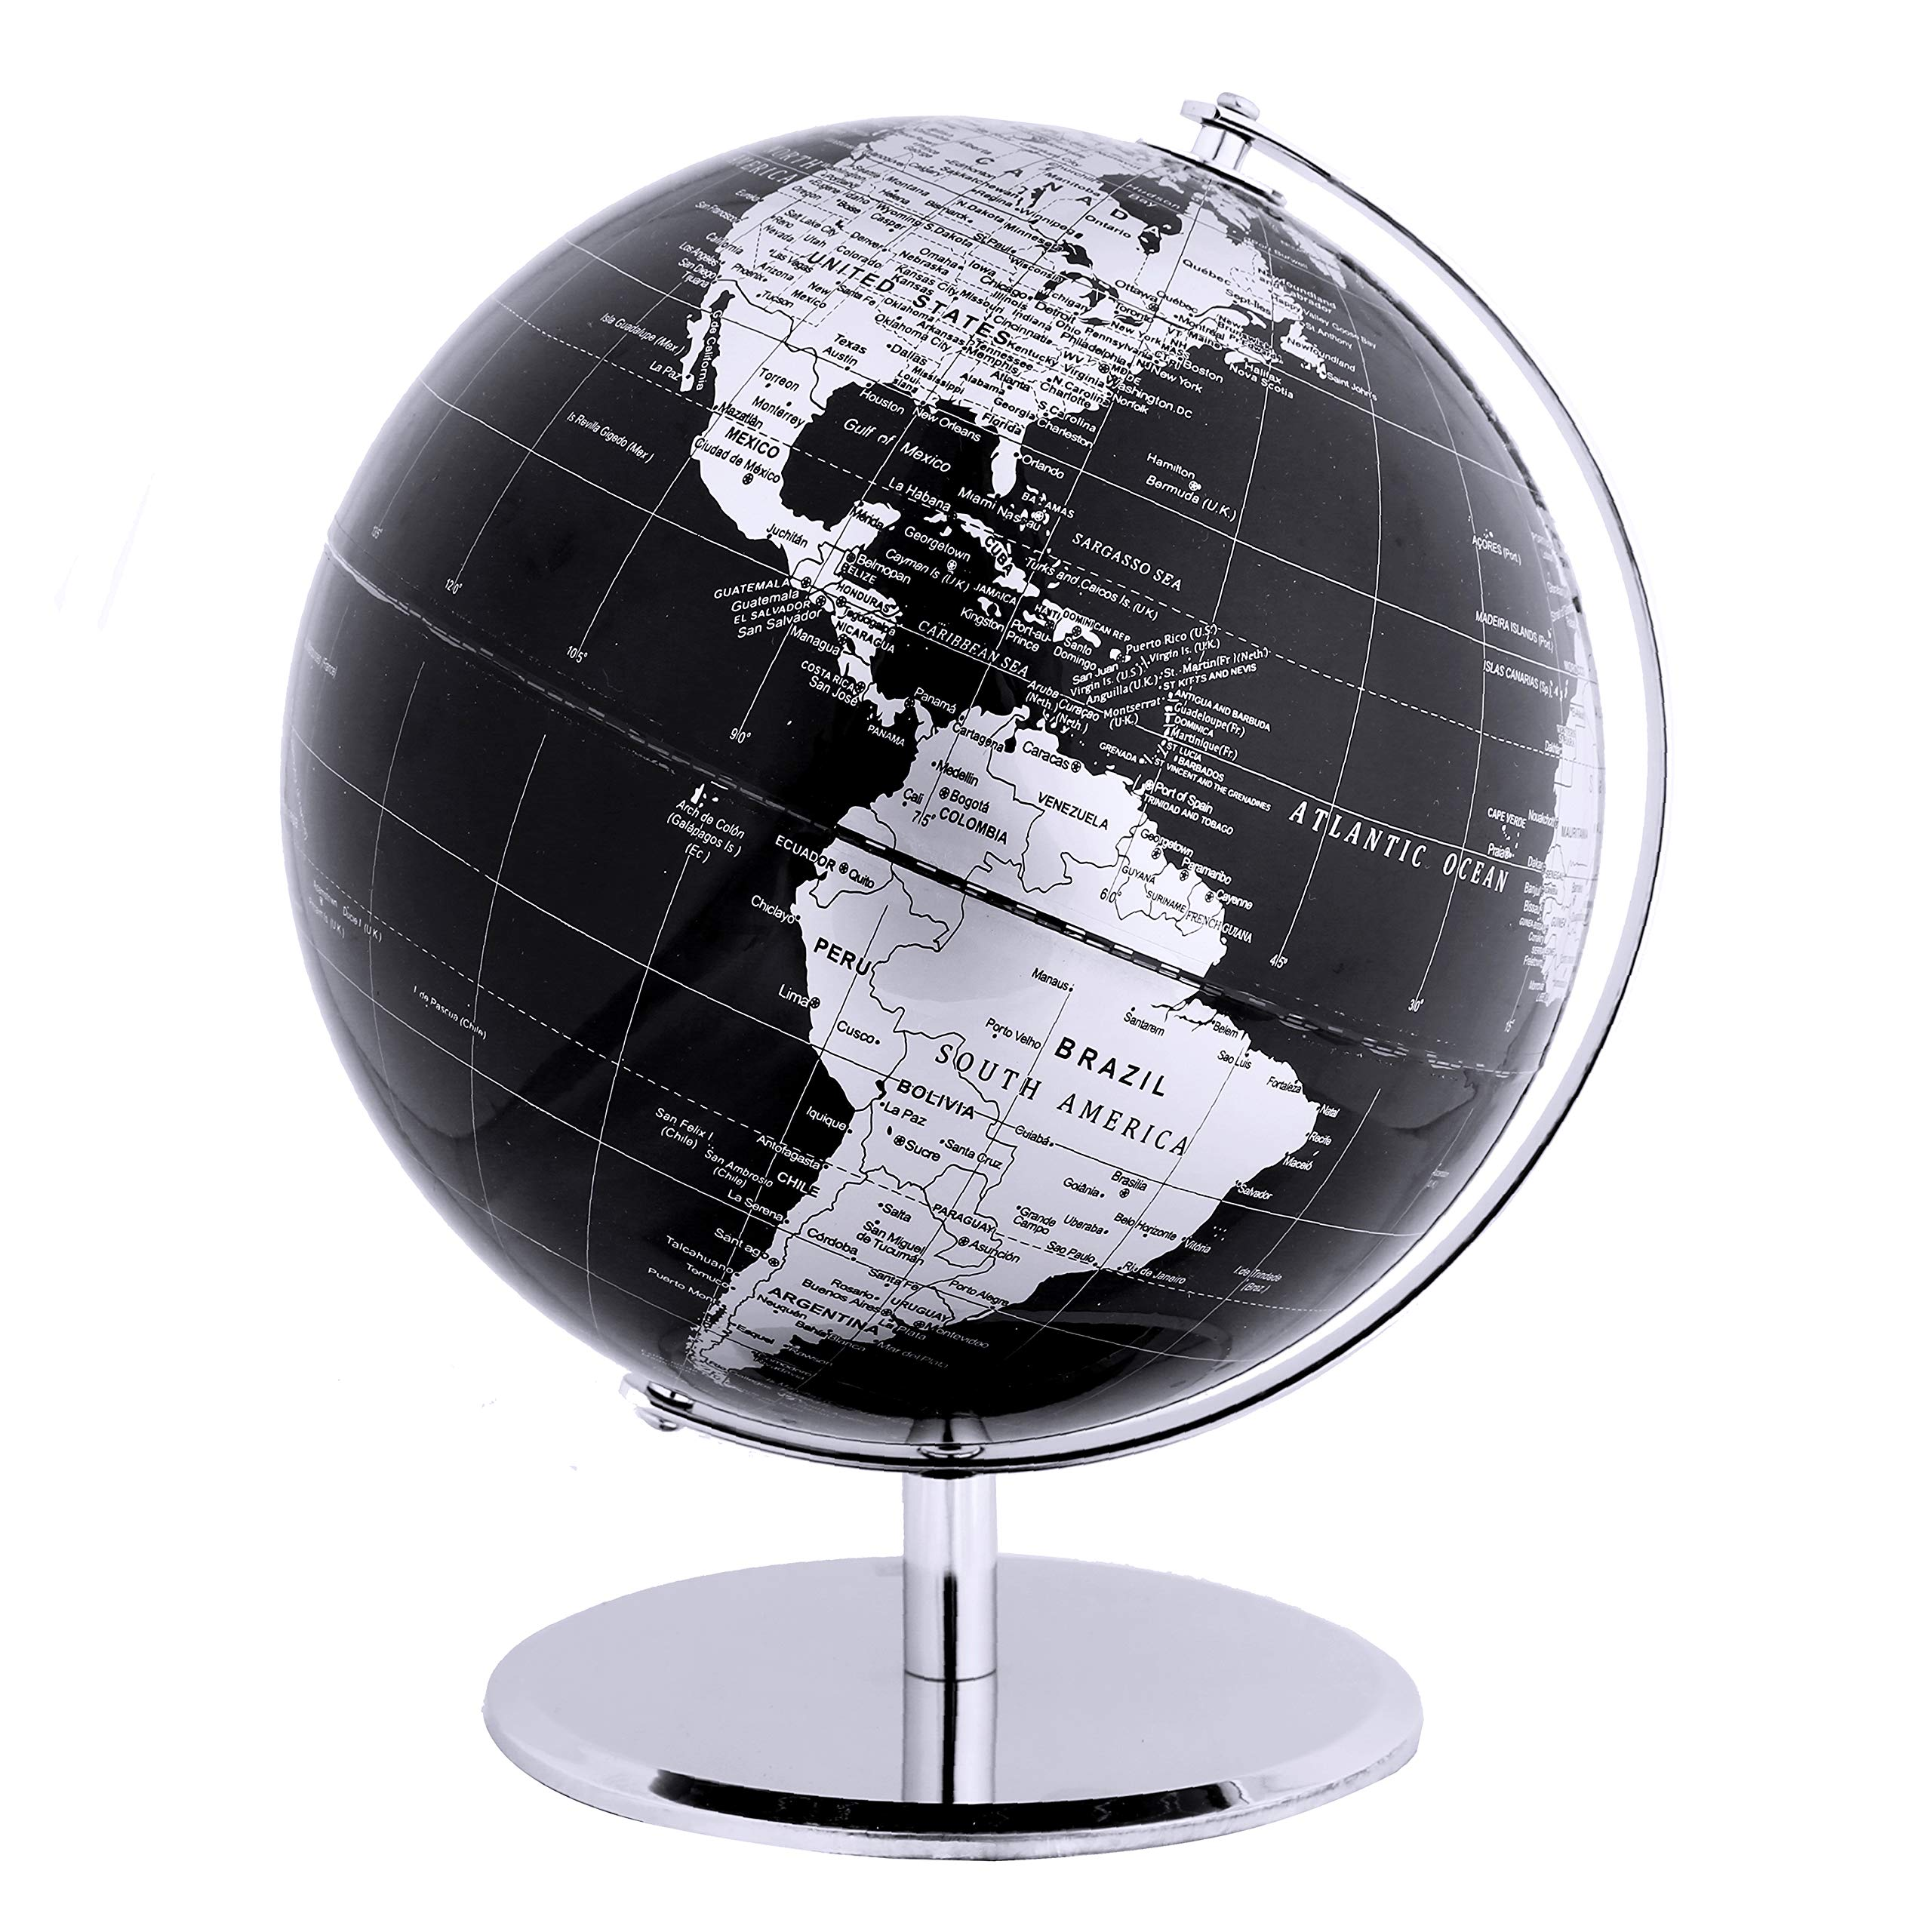 Exerz Metallic World Globe (Dia 10-Inch / 25 cm) Black - Educational/Geographic/Modern Desktop Decoration - Stainless Steel Arc and Base/Earth World - Metallic Black - for School, Home, and Office